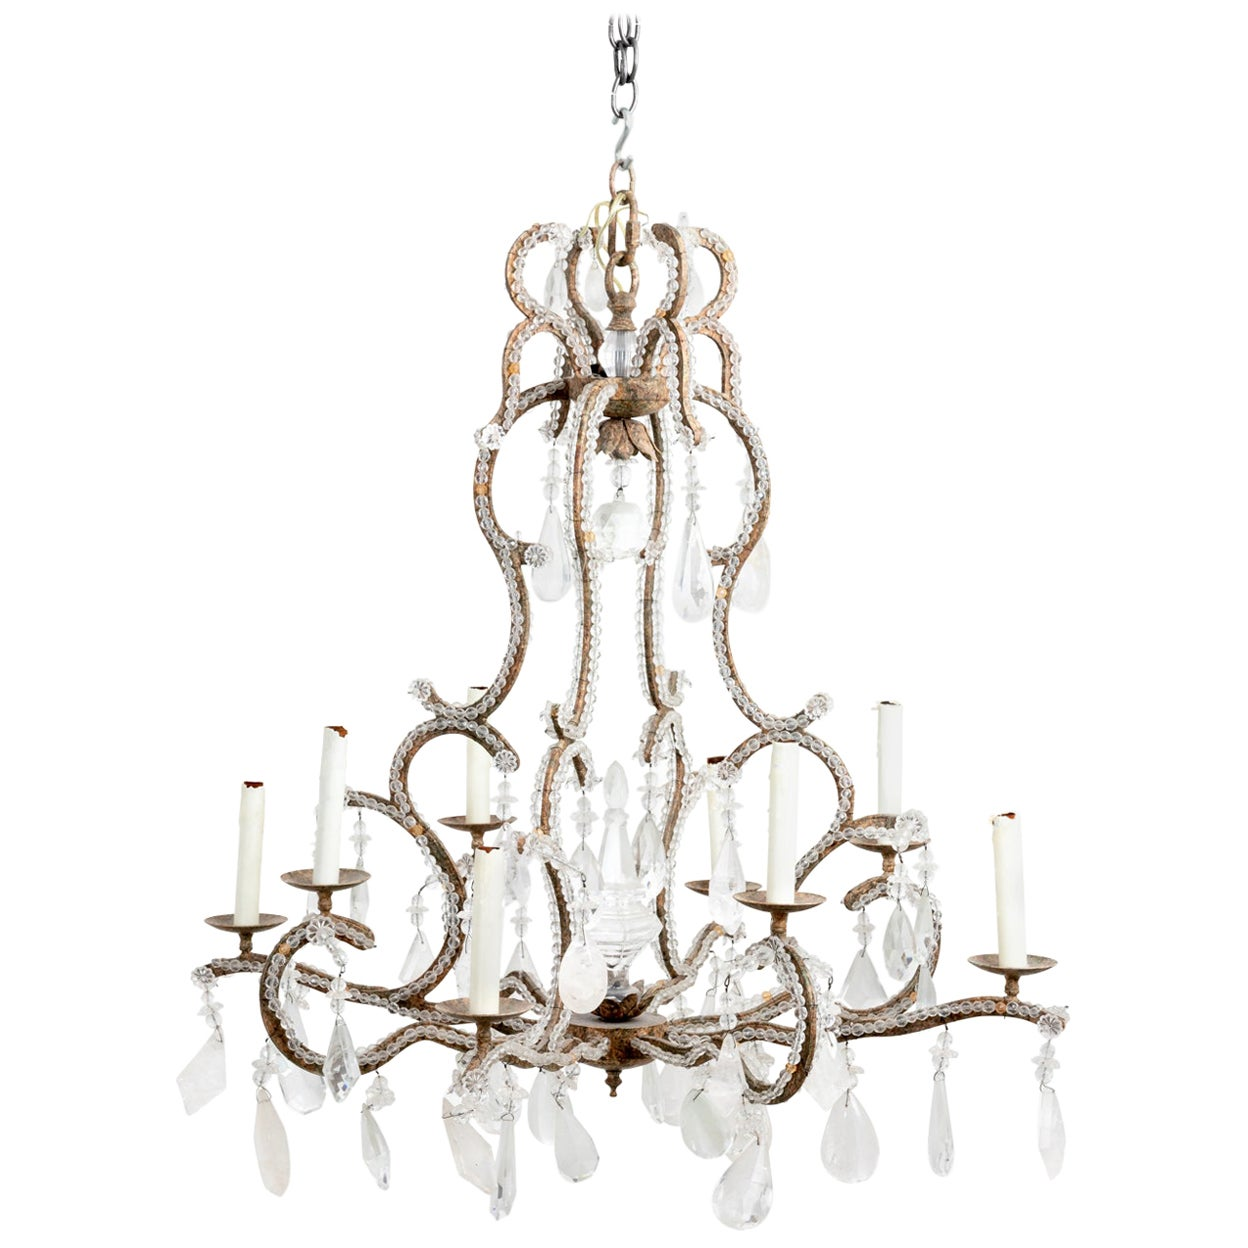 Large Beaded Chandelier Hung with Rock Crystal Pendants and Crystal Pendants